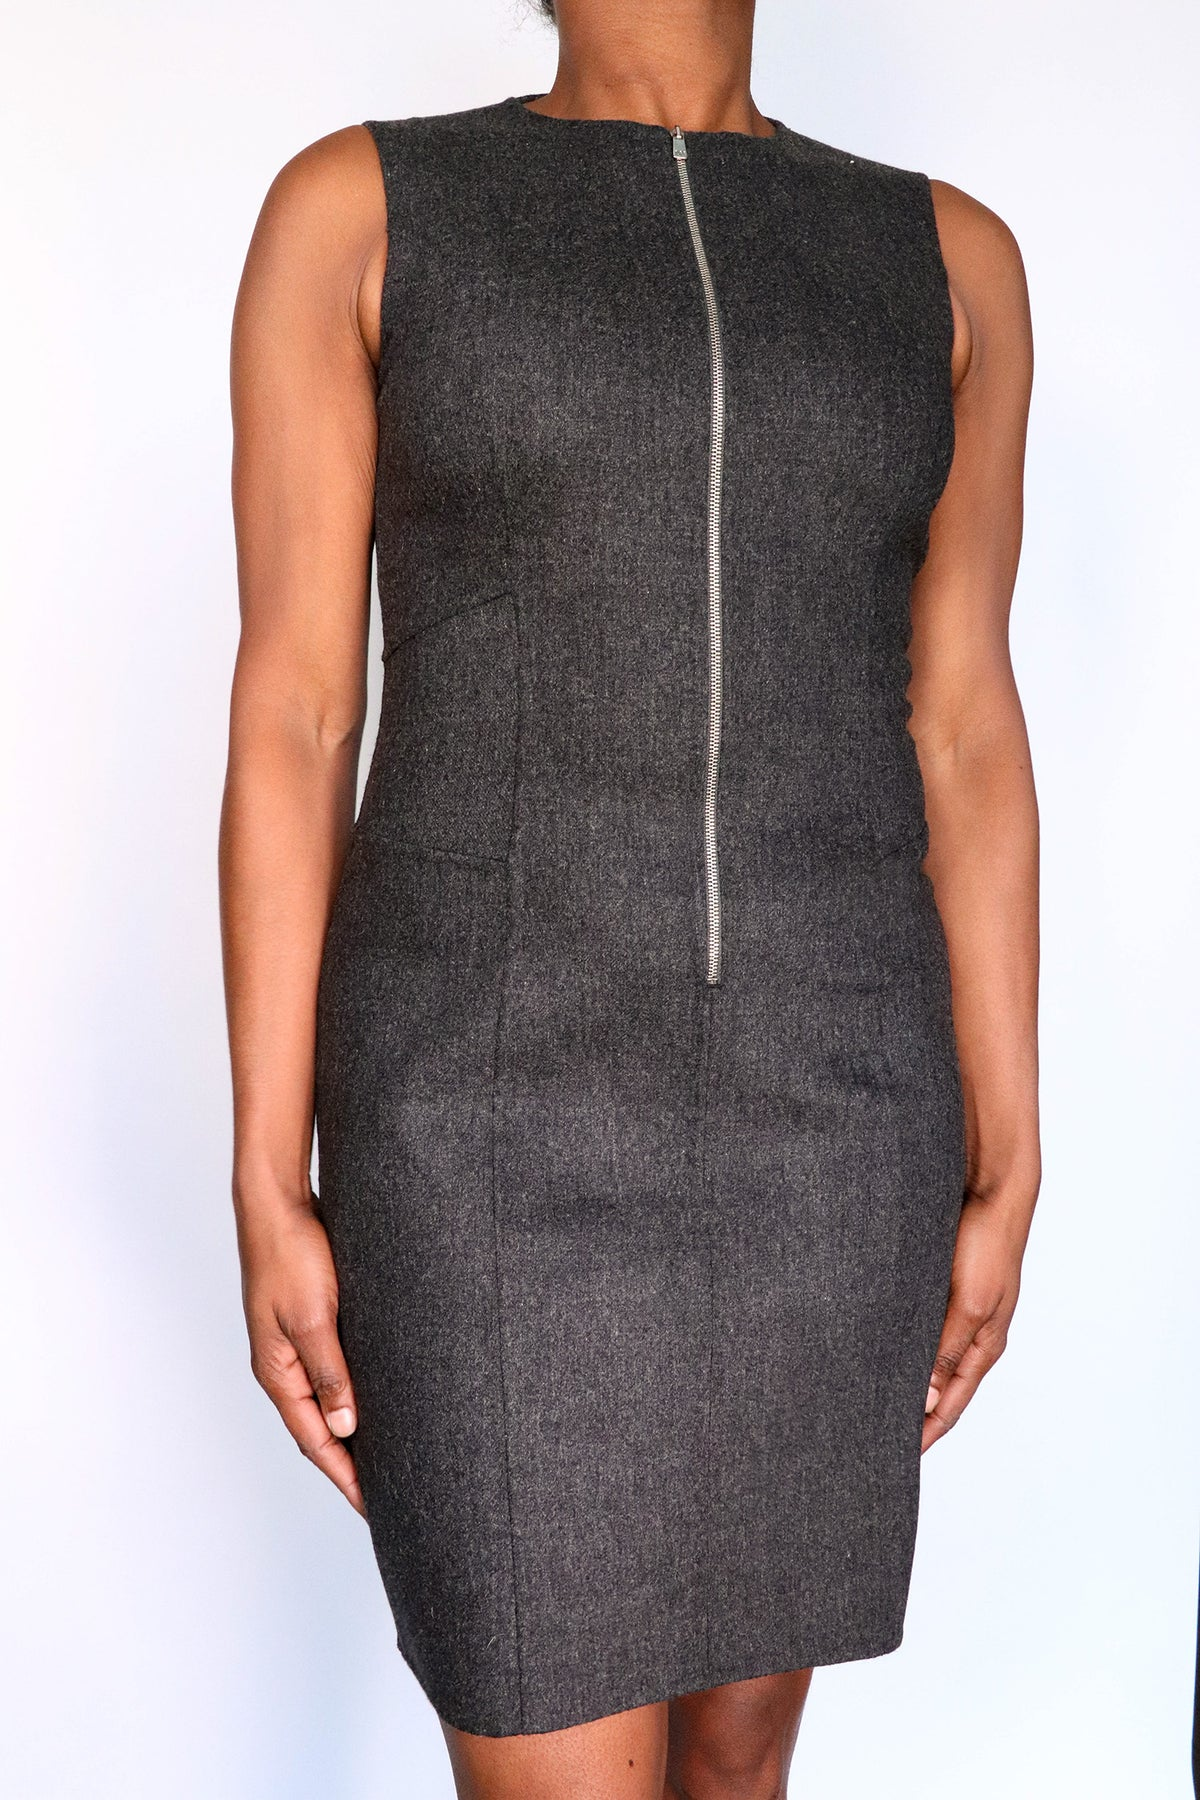 Michael Kors - Wool A Line Dress - 8